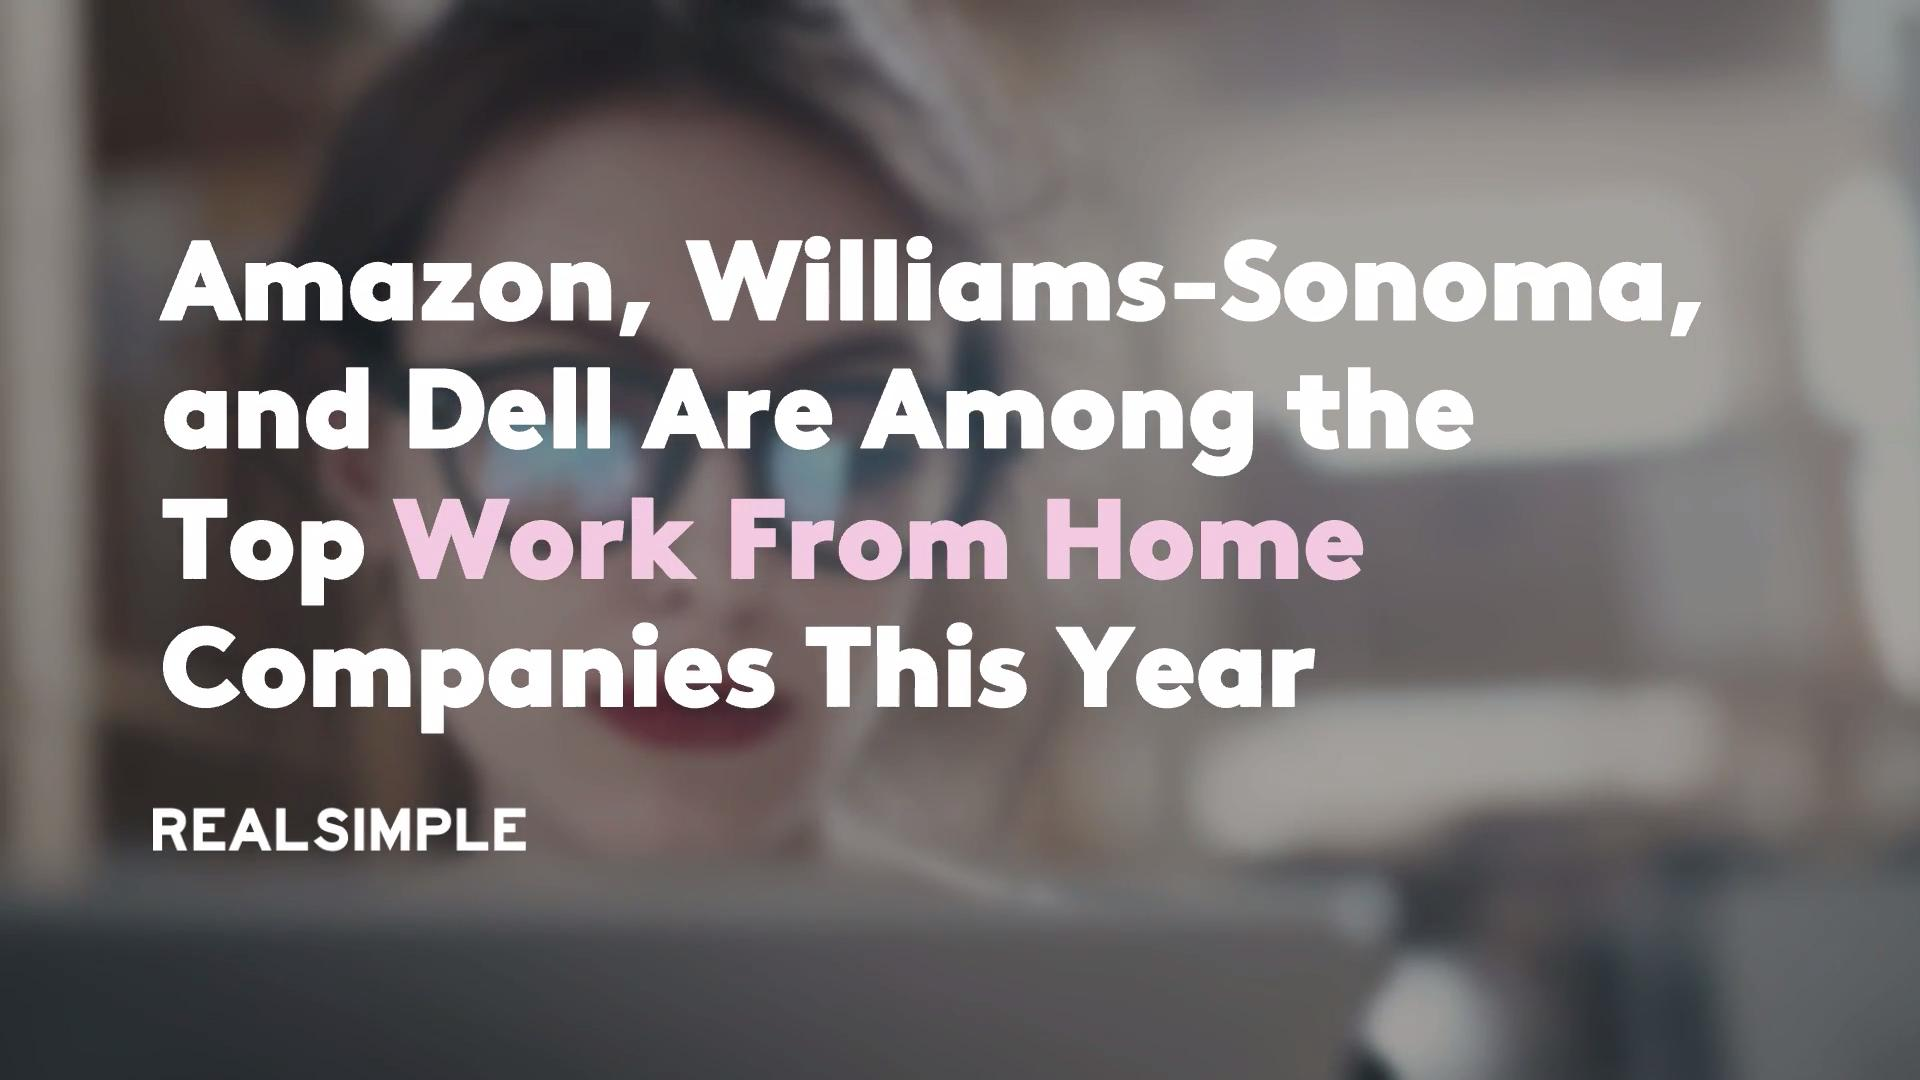 Amazon, Williams-Sonoma, and Dell Are Among the Top Work From Home Companies This Year